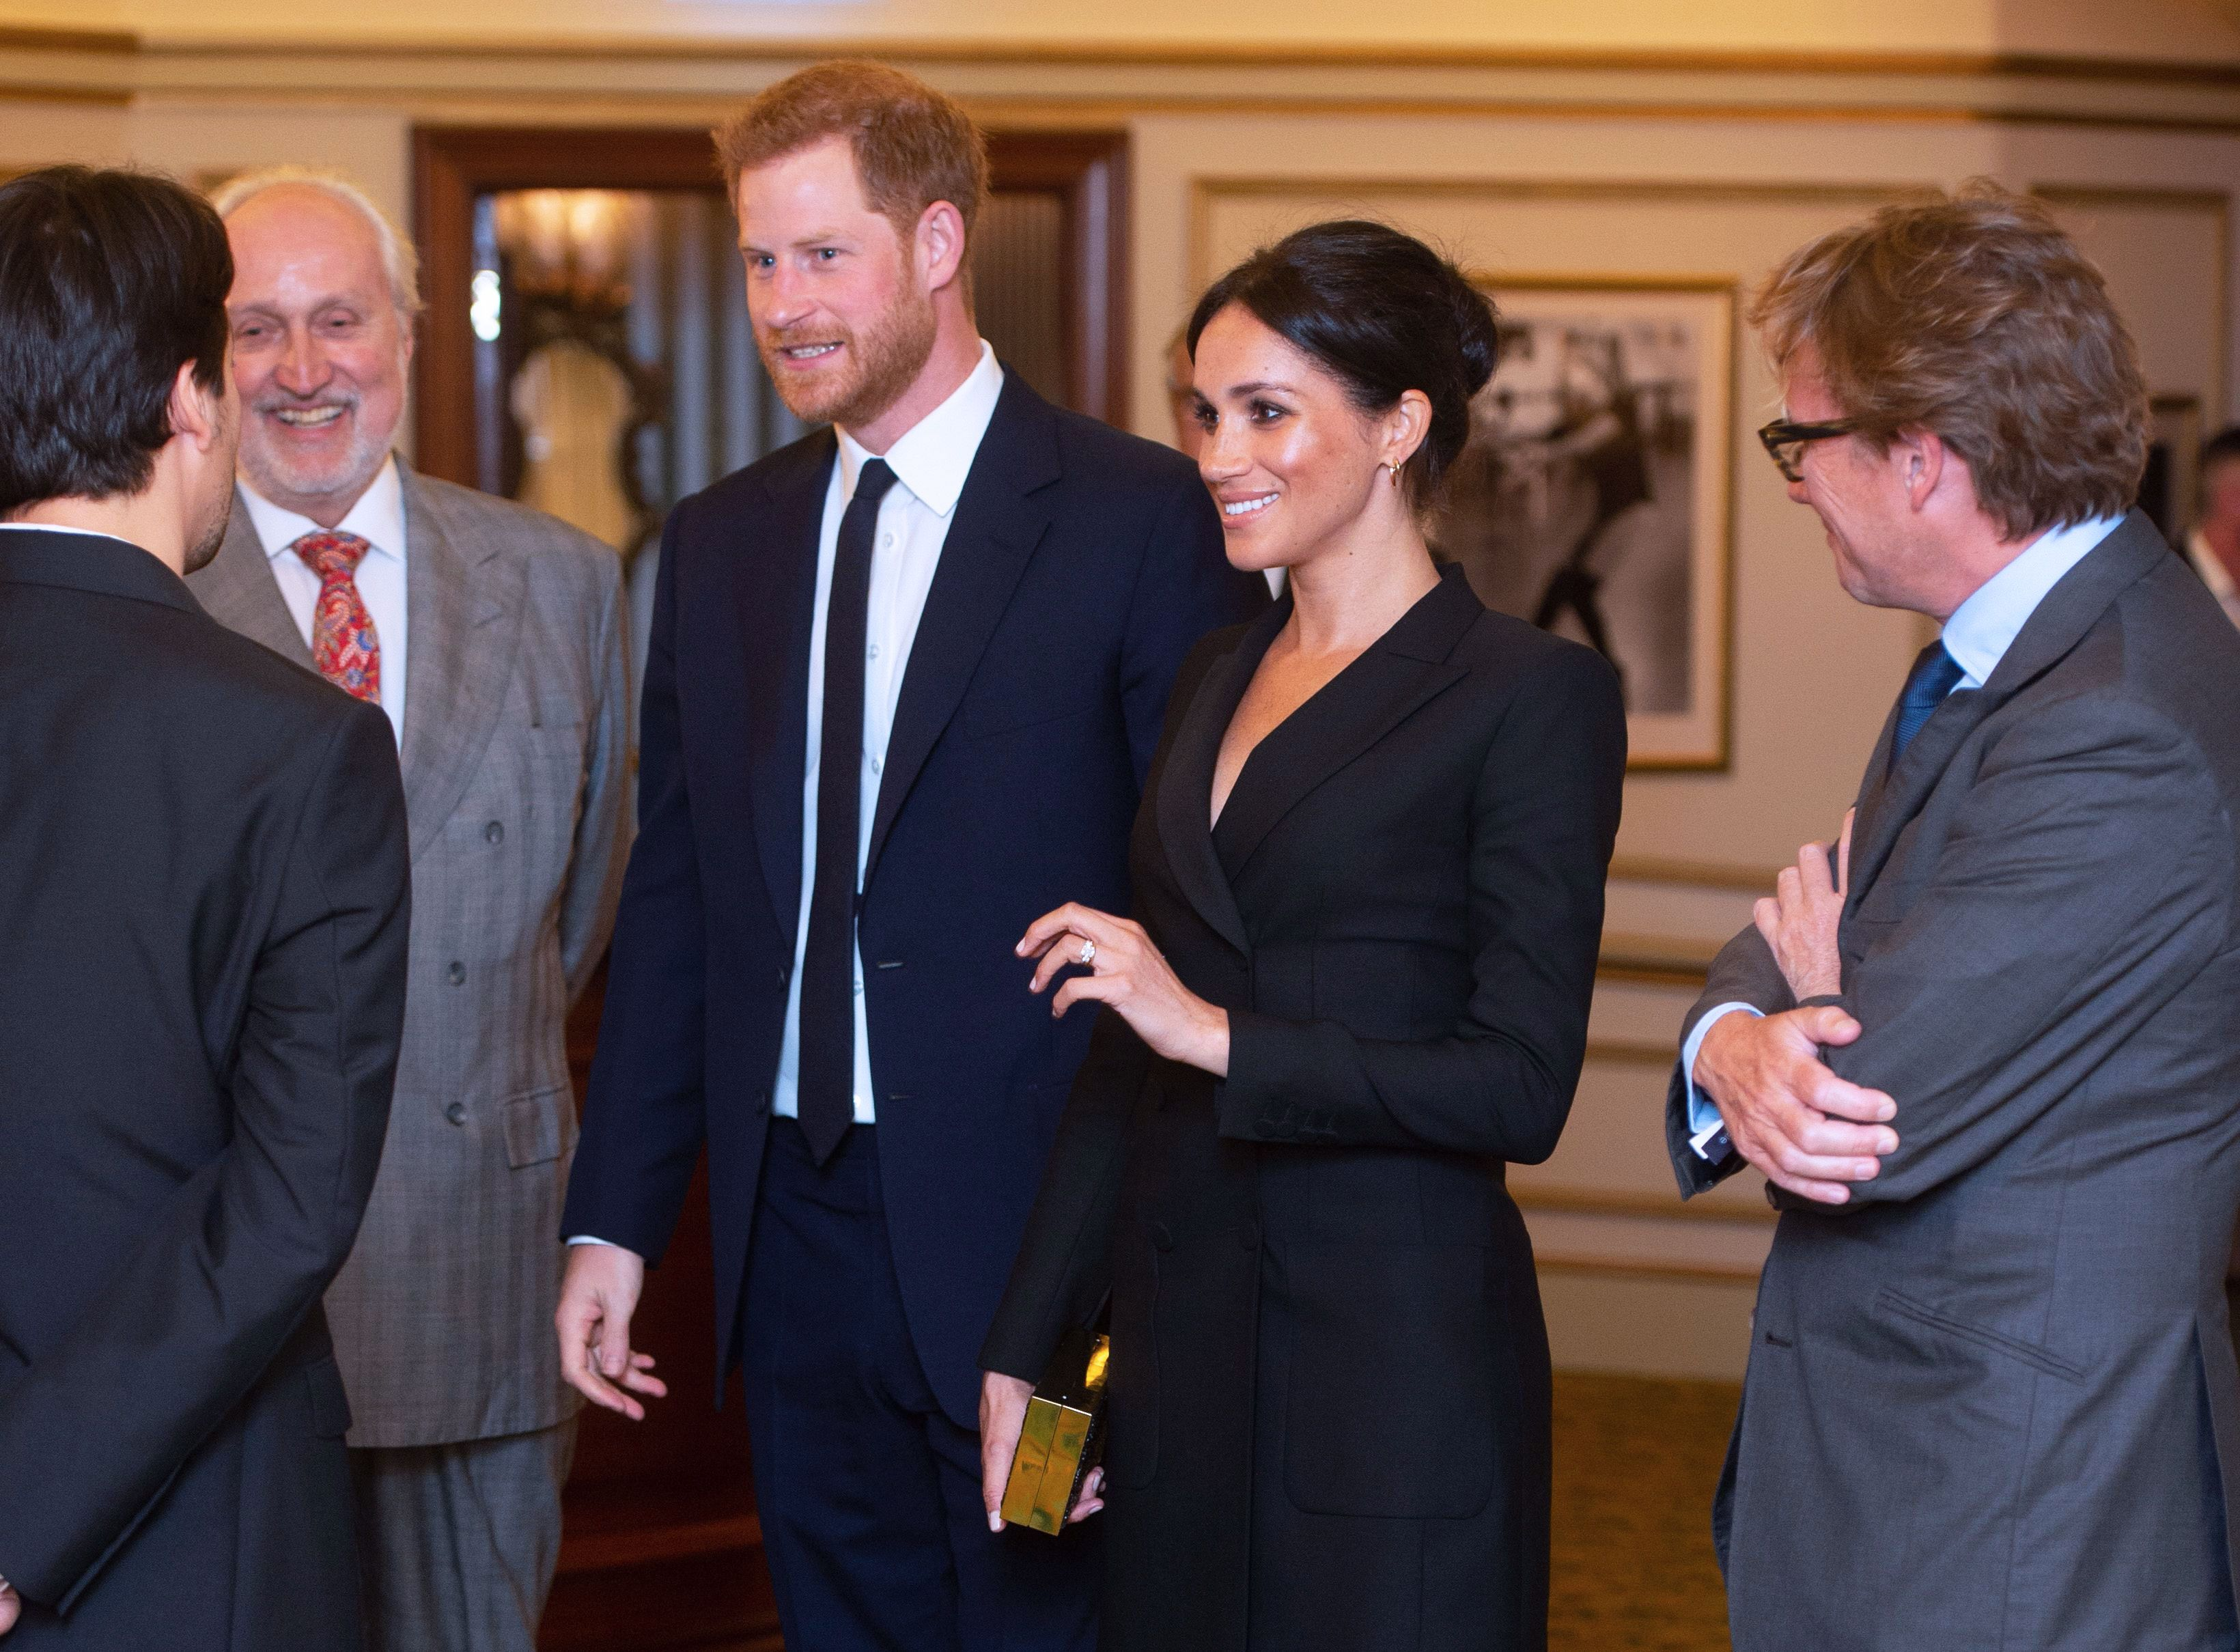 5bcf80eef01 Meghan Markle's 'Hamilton' Tuxedo Dress Killed an Old Rumor About Royal  Protocol